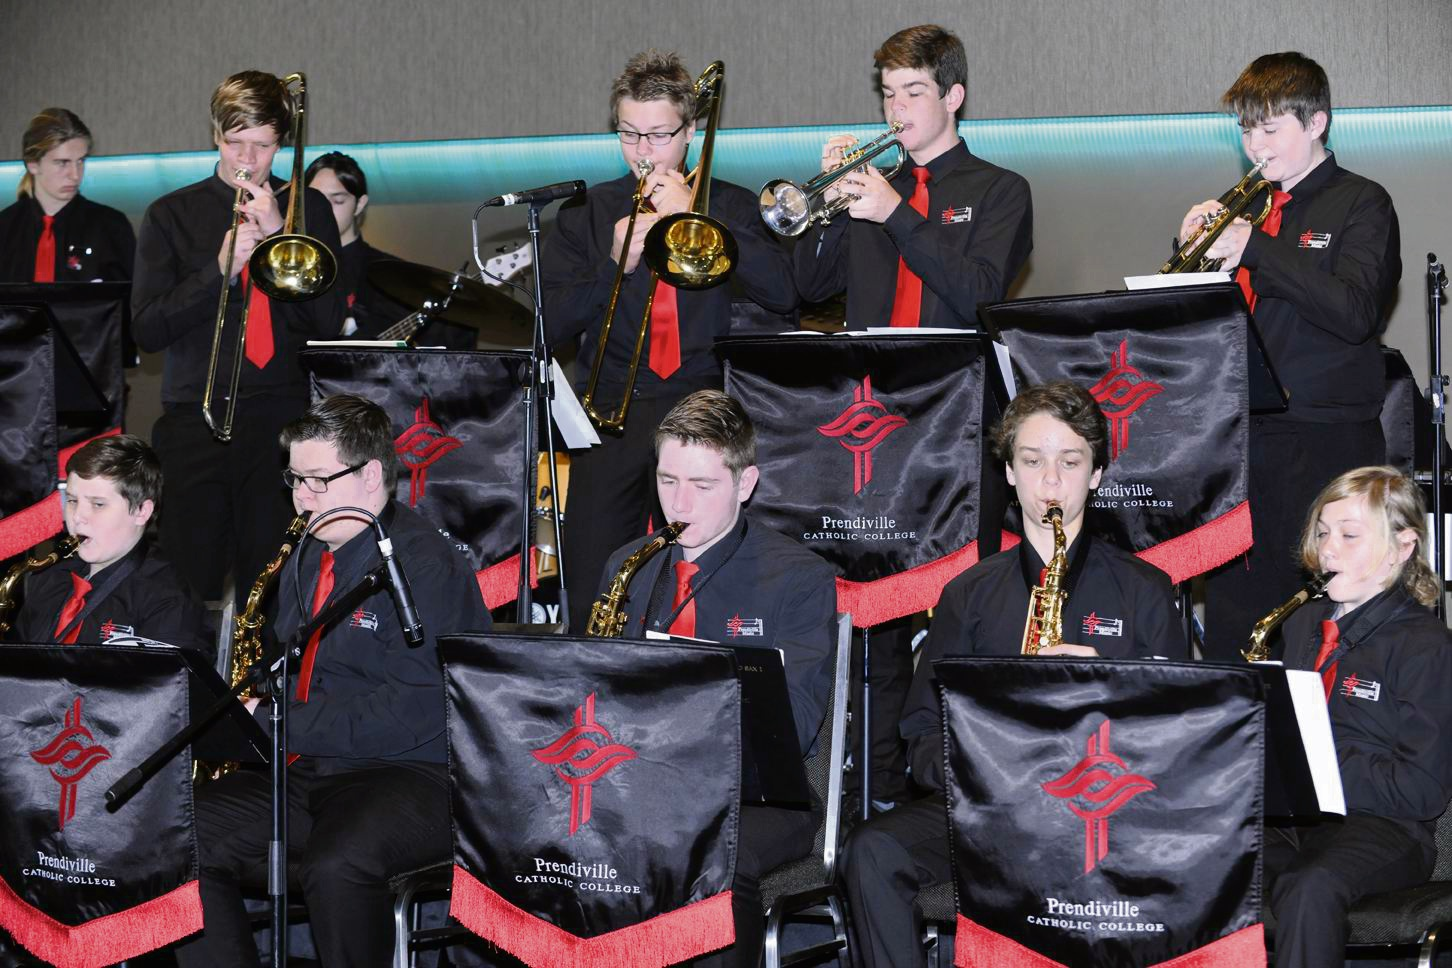 Prendiville Catholic College senior jazz band. Picture: Chris Kershaw